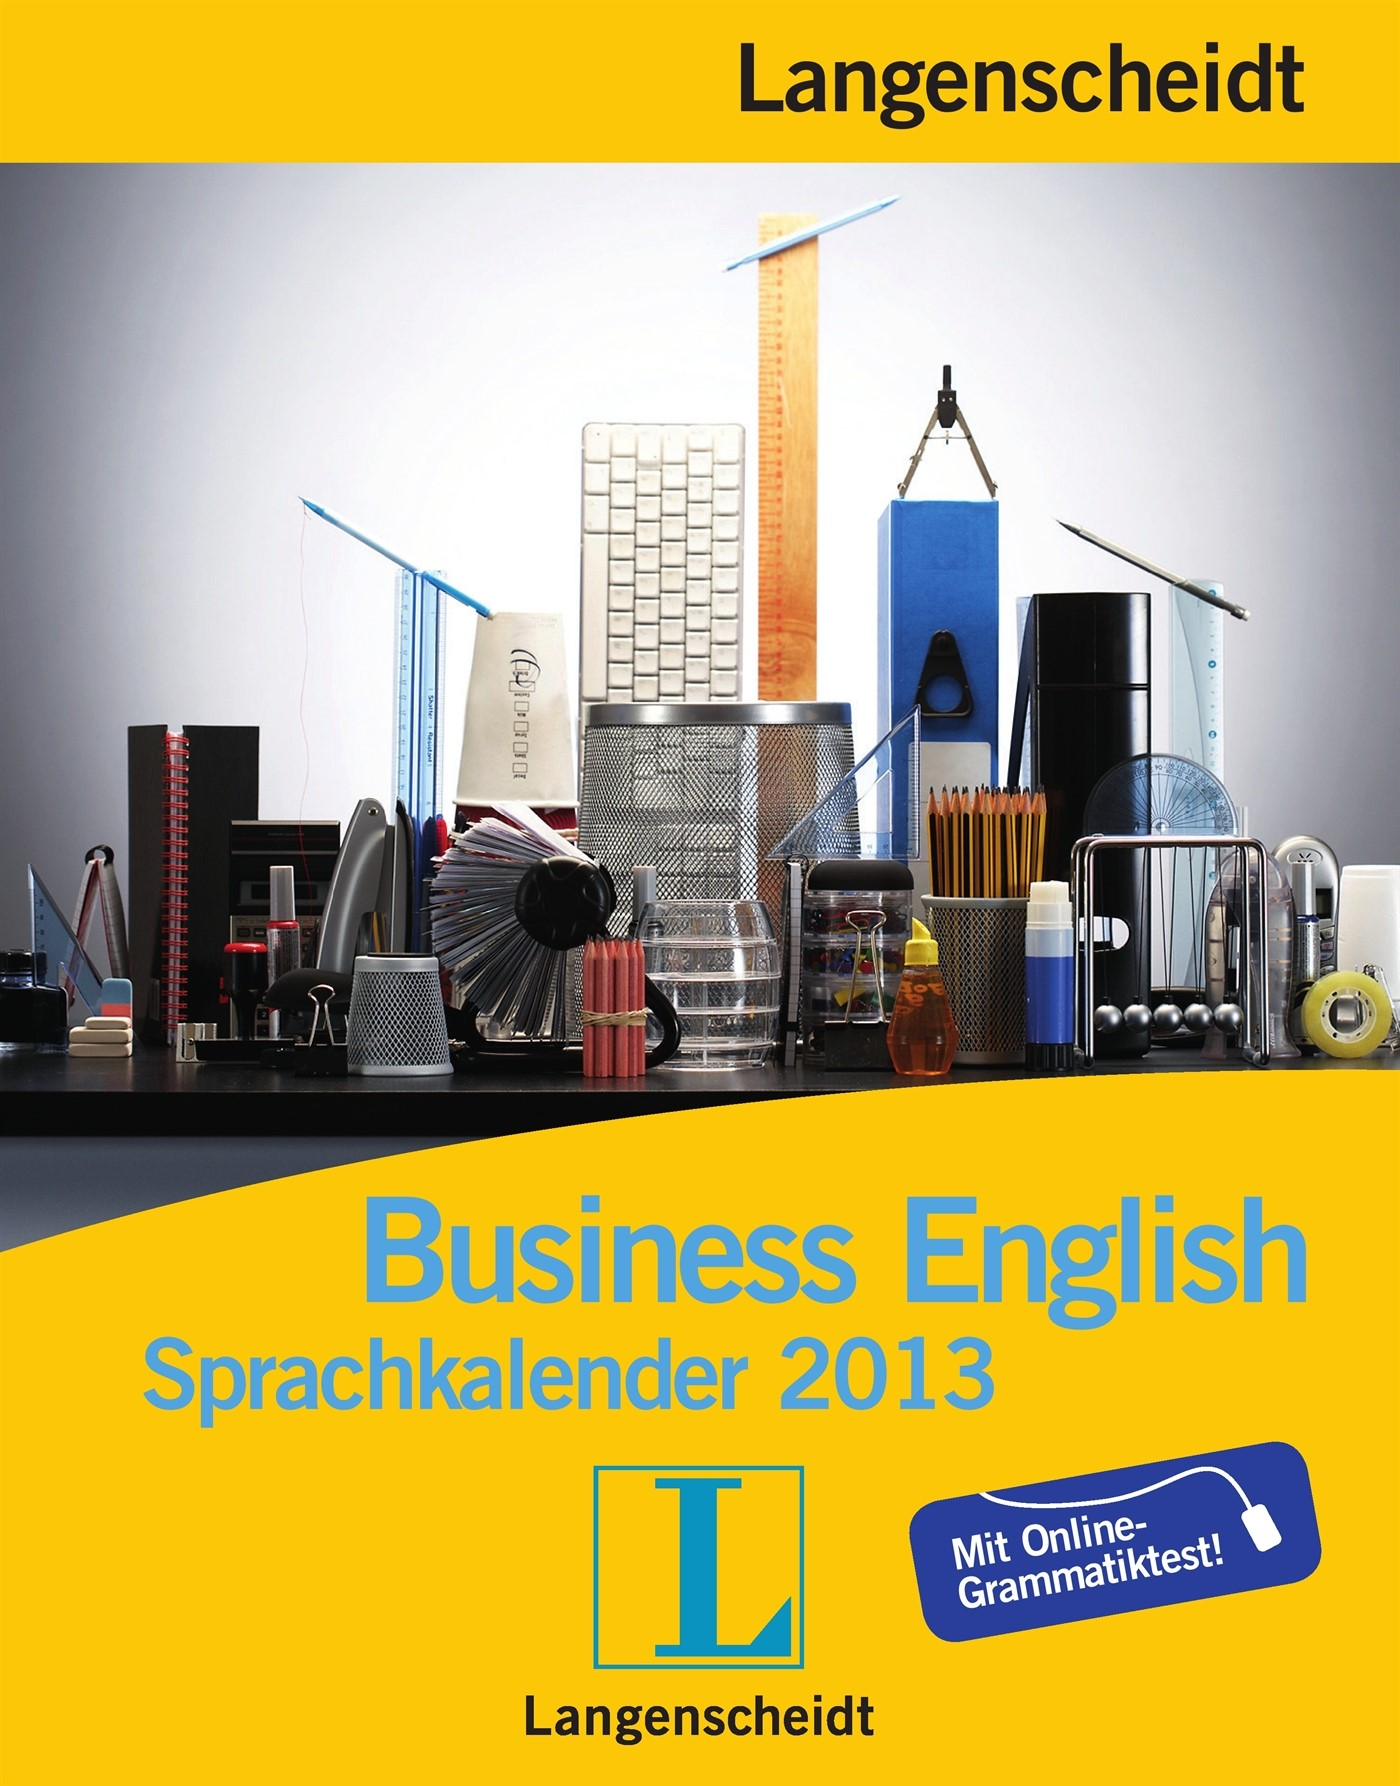 Langenscheidt Sprachkalender 2013 Business English (Cover)